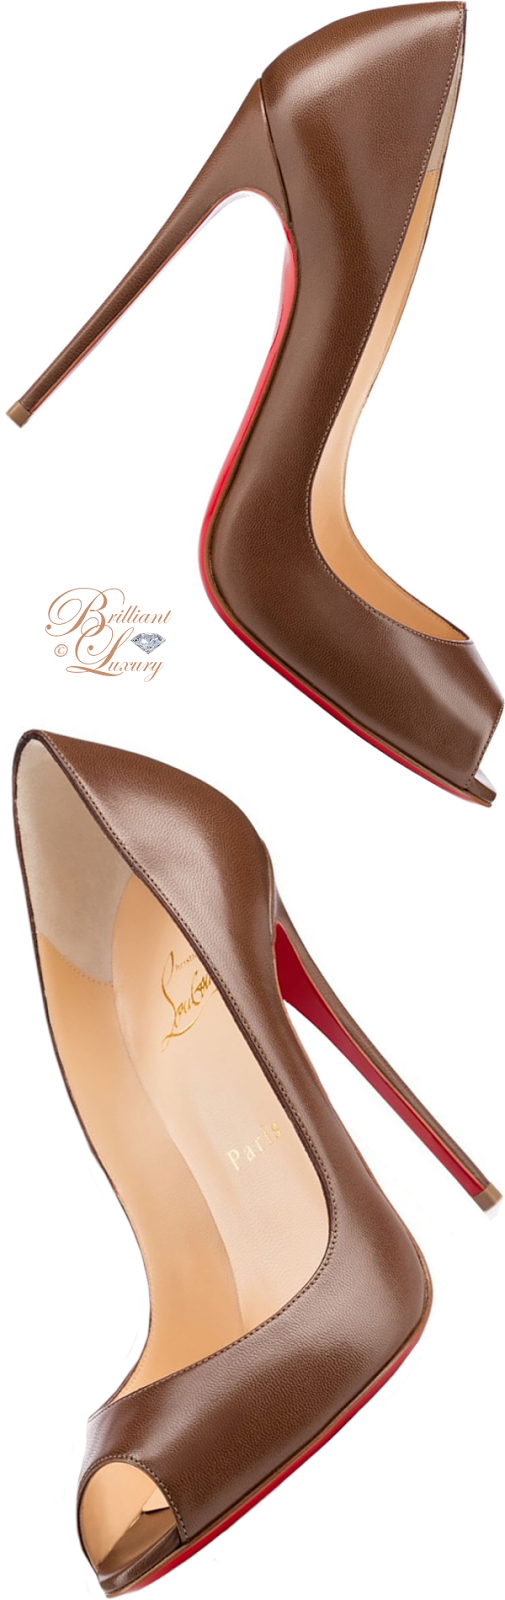 Brilliant Luxury ♦ Christian Louboutin Youpi Ada peeptoe pump